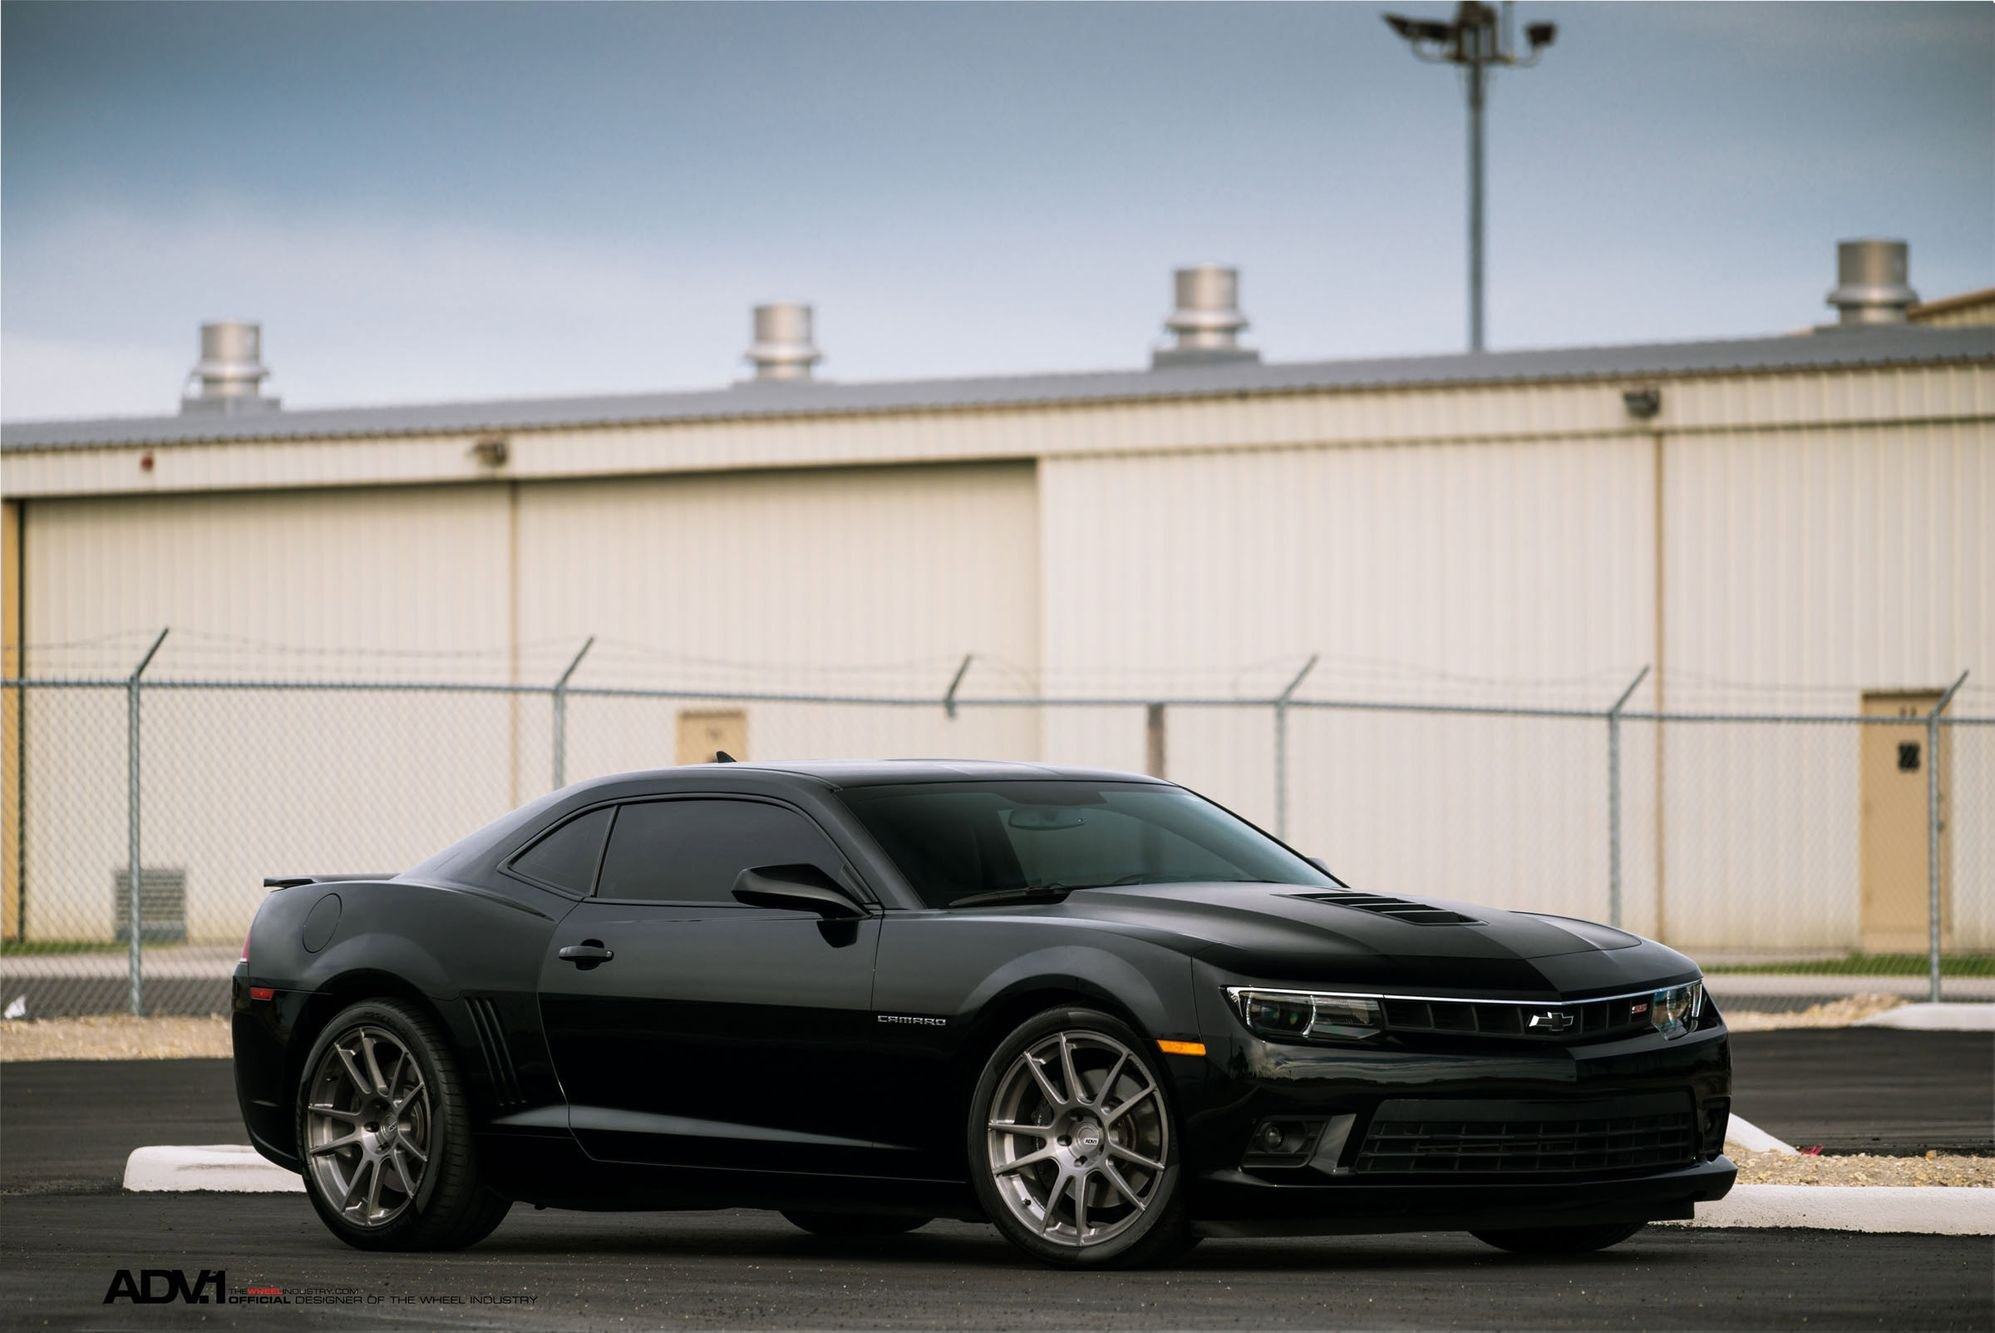 Black Chevy Camaro SS with Aftermarket Side Skirts - Photo by ADV.1